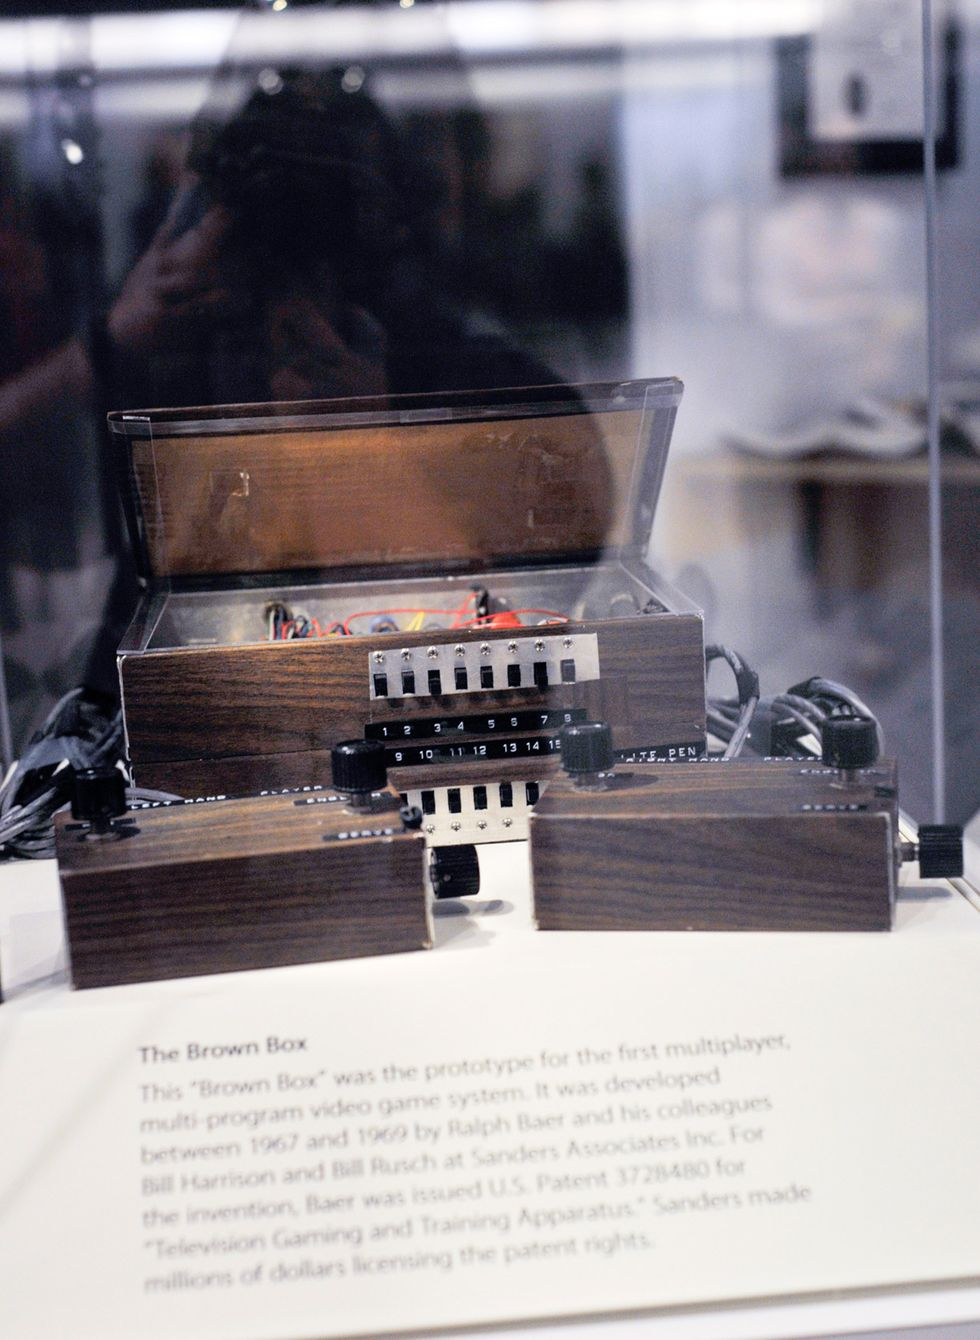 'The Brown Box' on display at the National Museum Of American History's Innovation Wing in Washington DC.